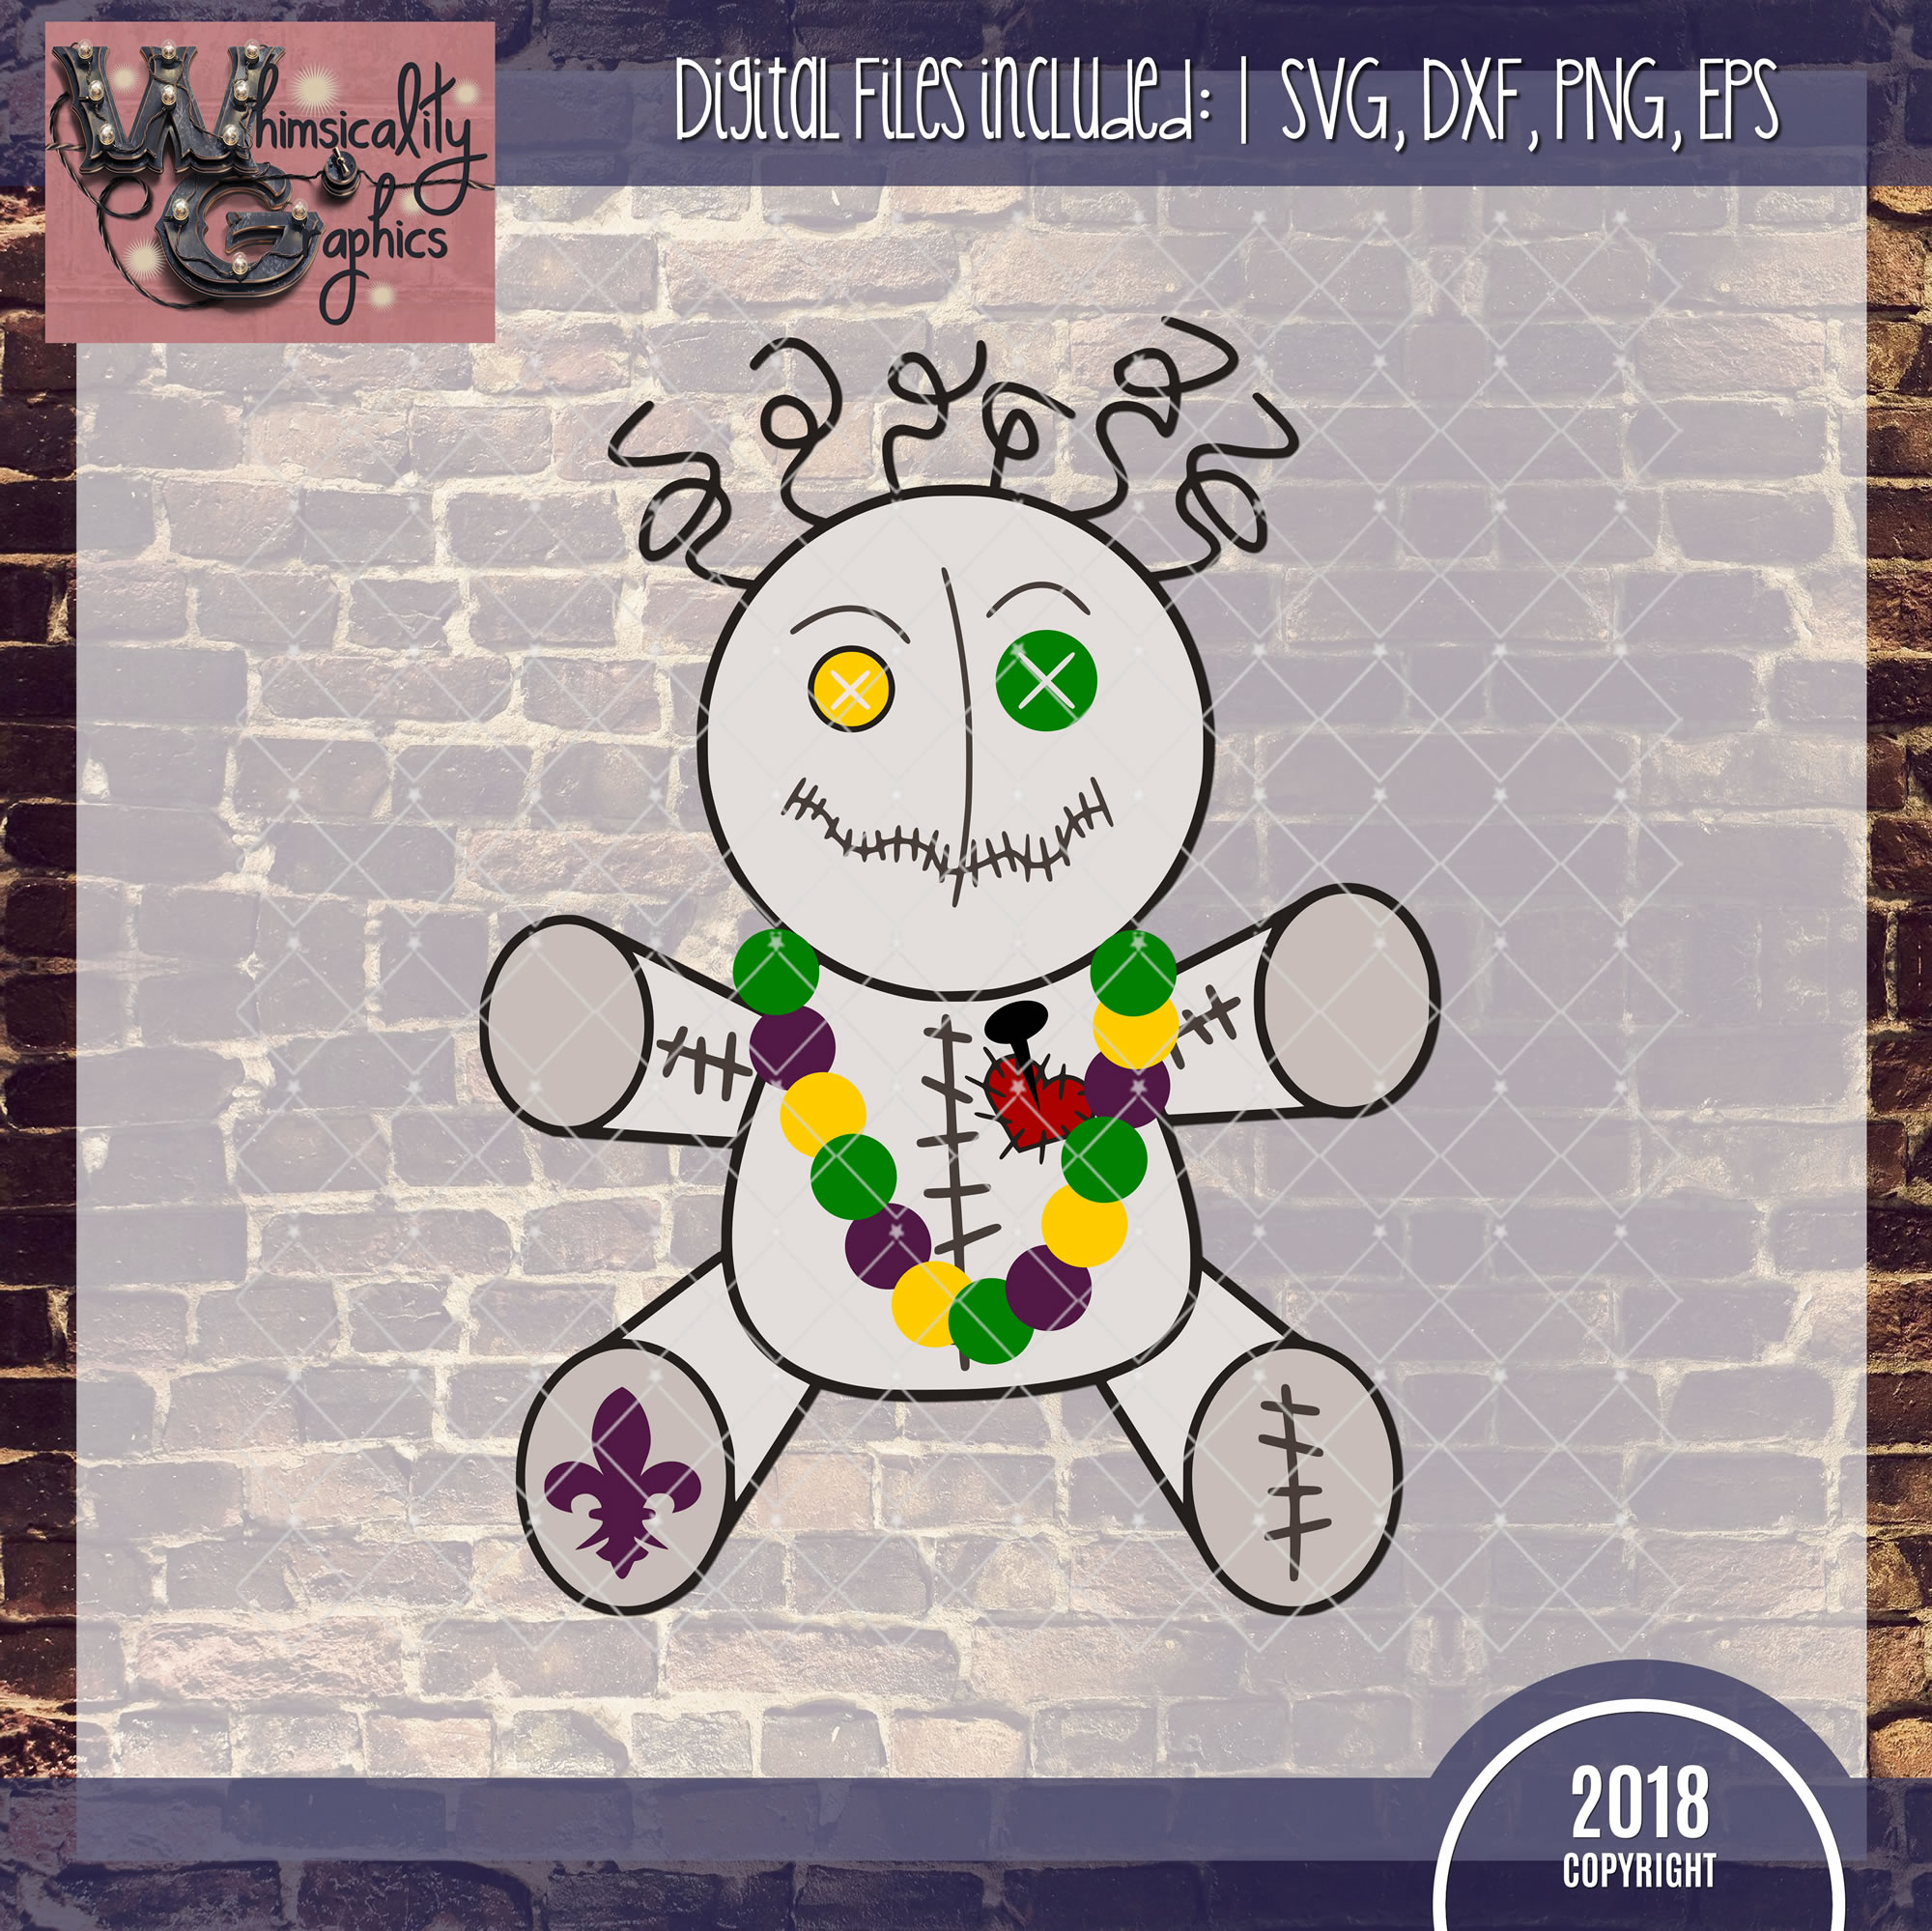 Mardi Gras Voodoo Doll SVG, DXF, PNG, EPS